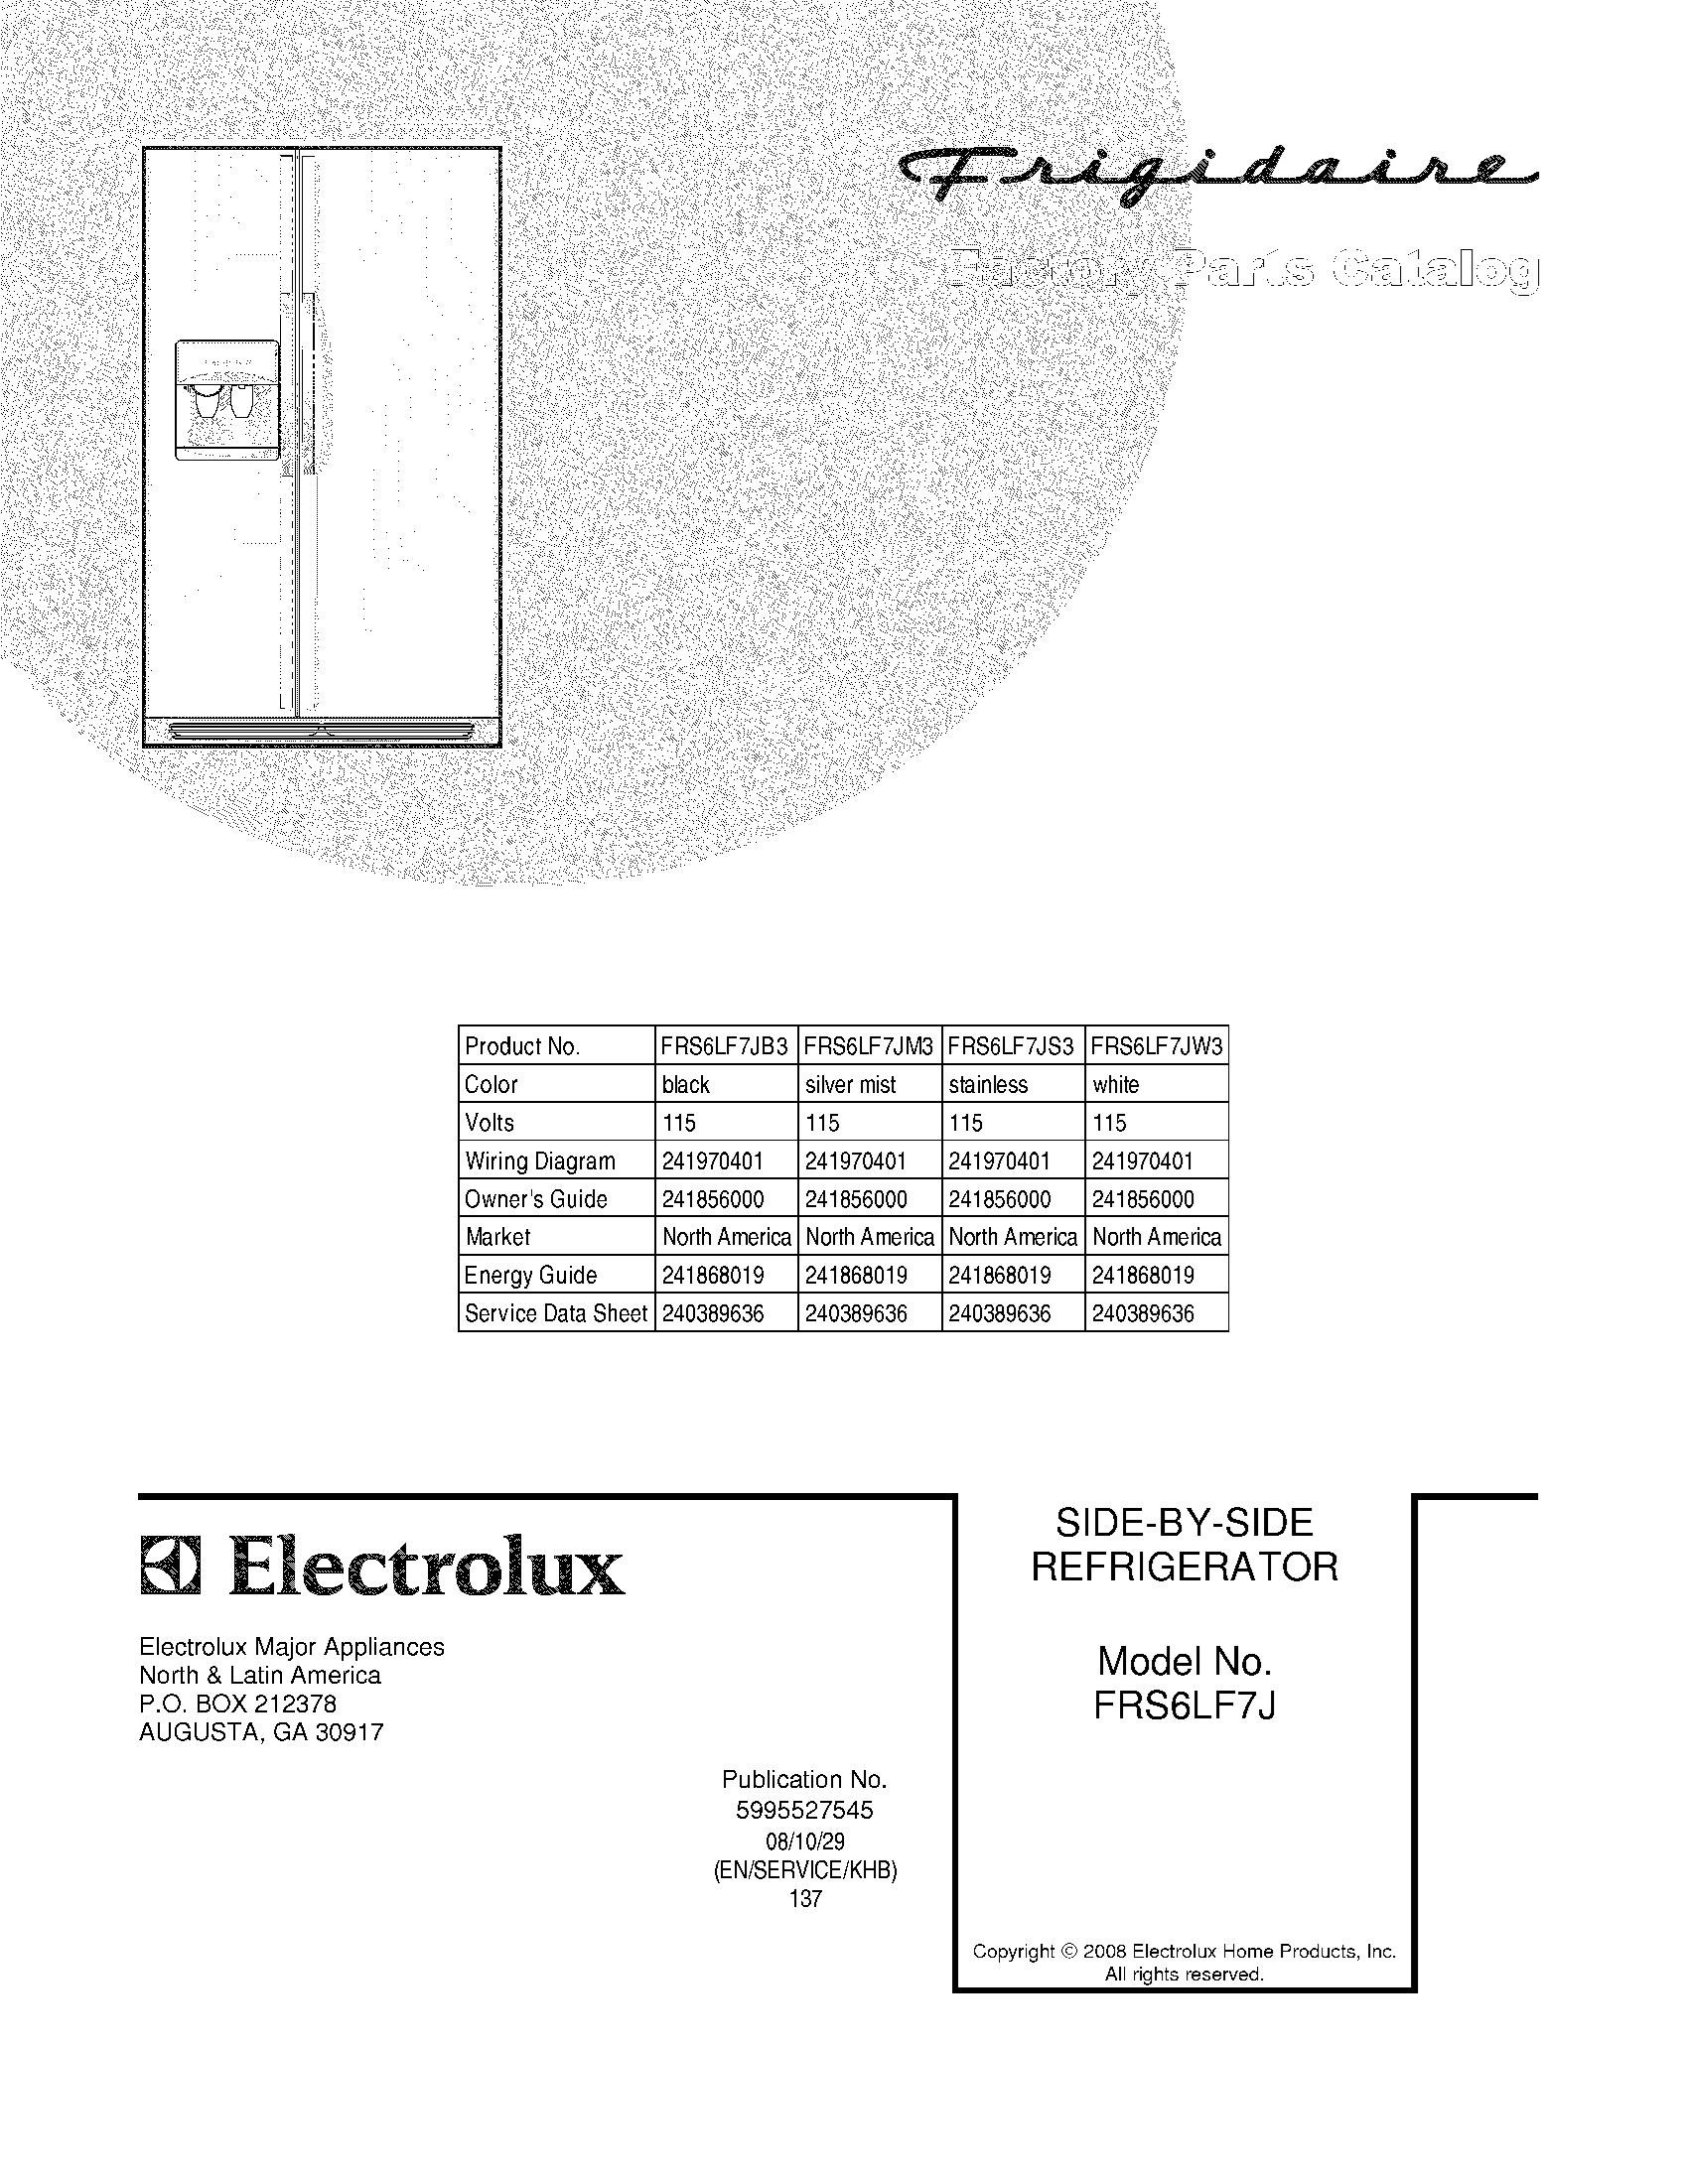 ElectroluxImg_19000101 20150717_00096855 frigidaire refrigerator wiring diagram dolgular com wiring diagram for gler341as2 at crackthecode.co